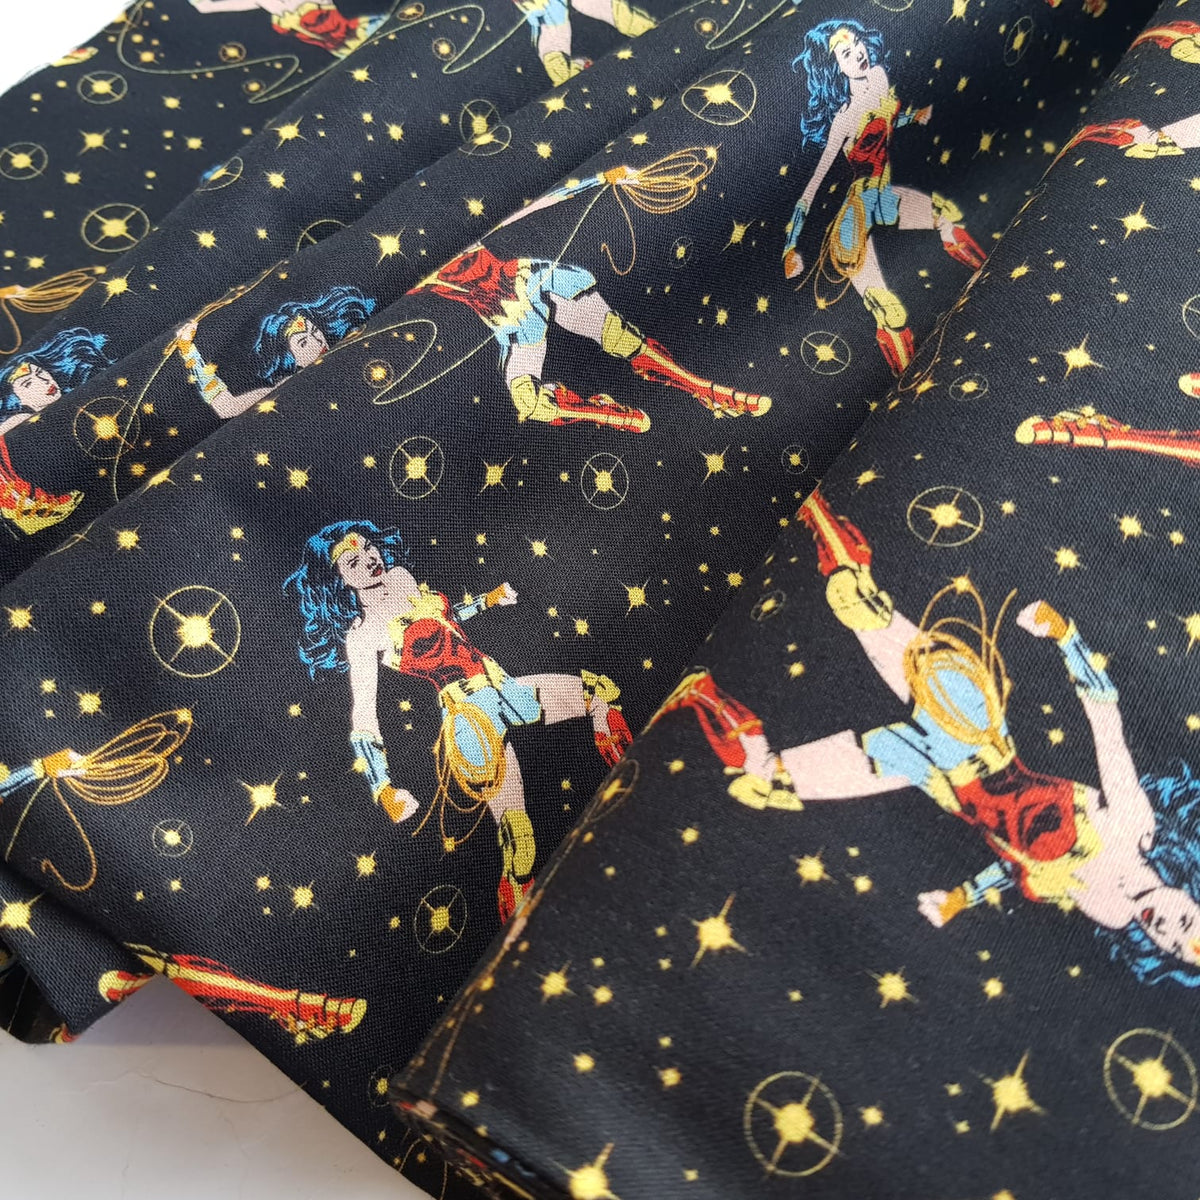 Wonder woman in action 100% premium cotton fabric, sold per half metre, 112cm wide